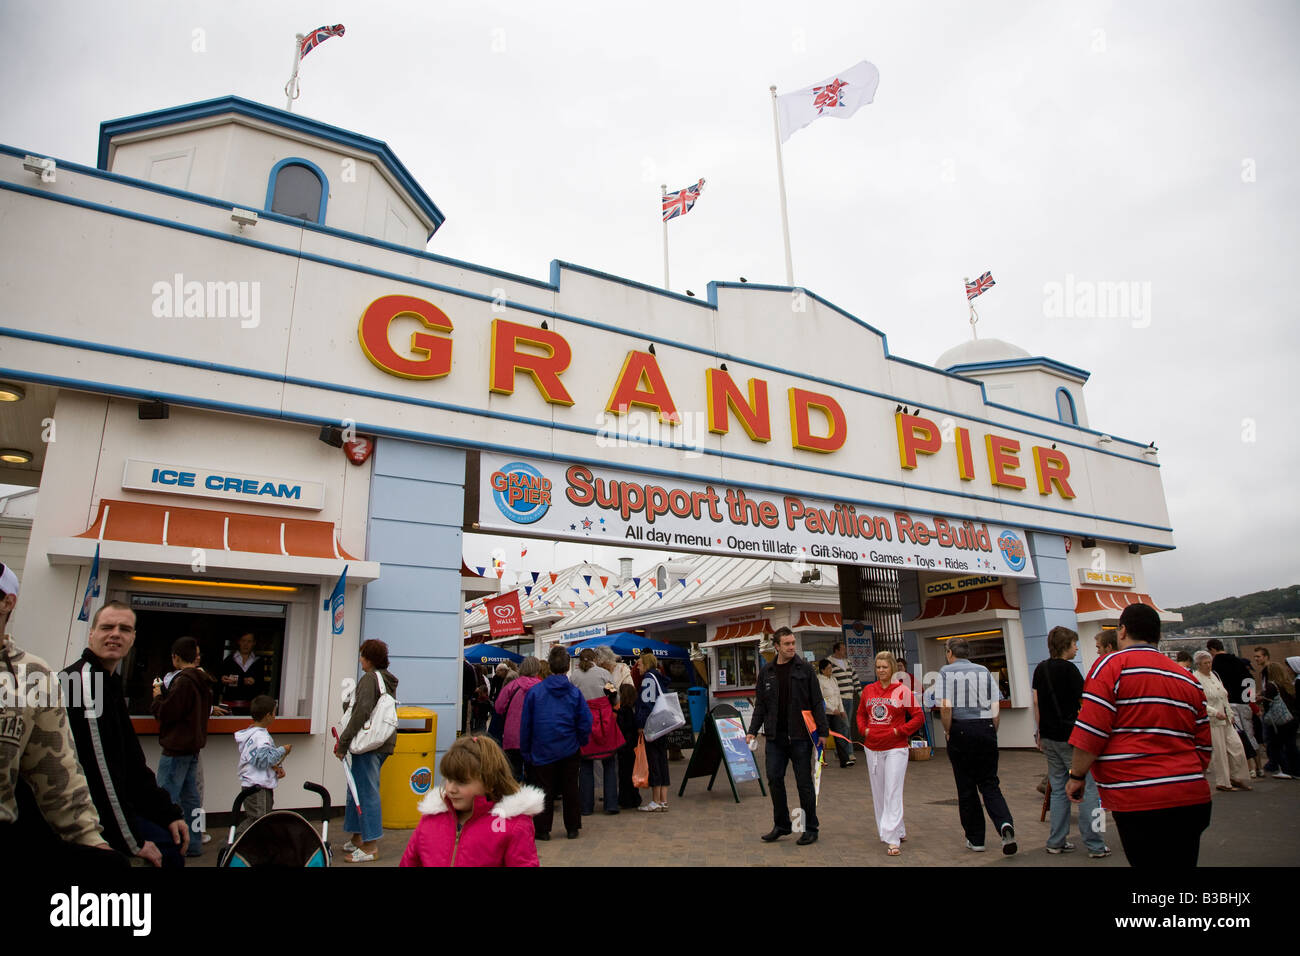 Entrance to the Grand Pier Weston Super MAre which suffered a large fire recently - Stock Image